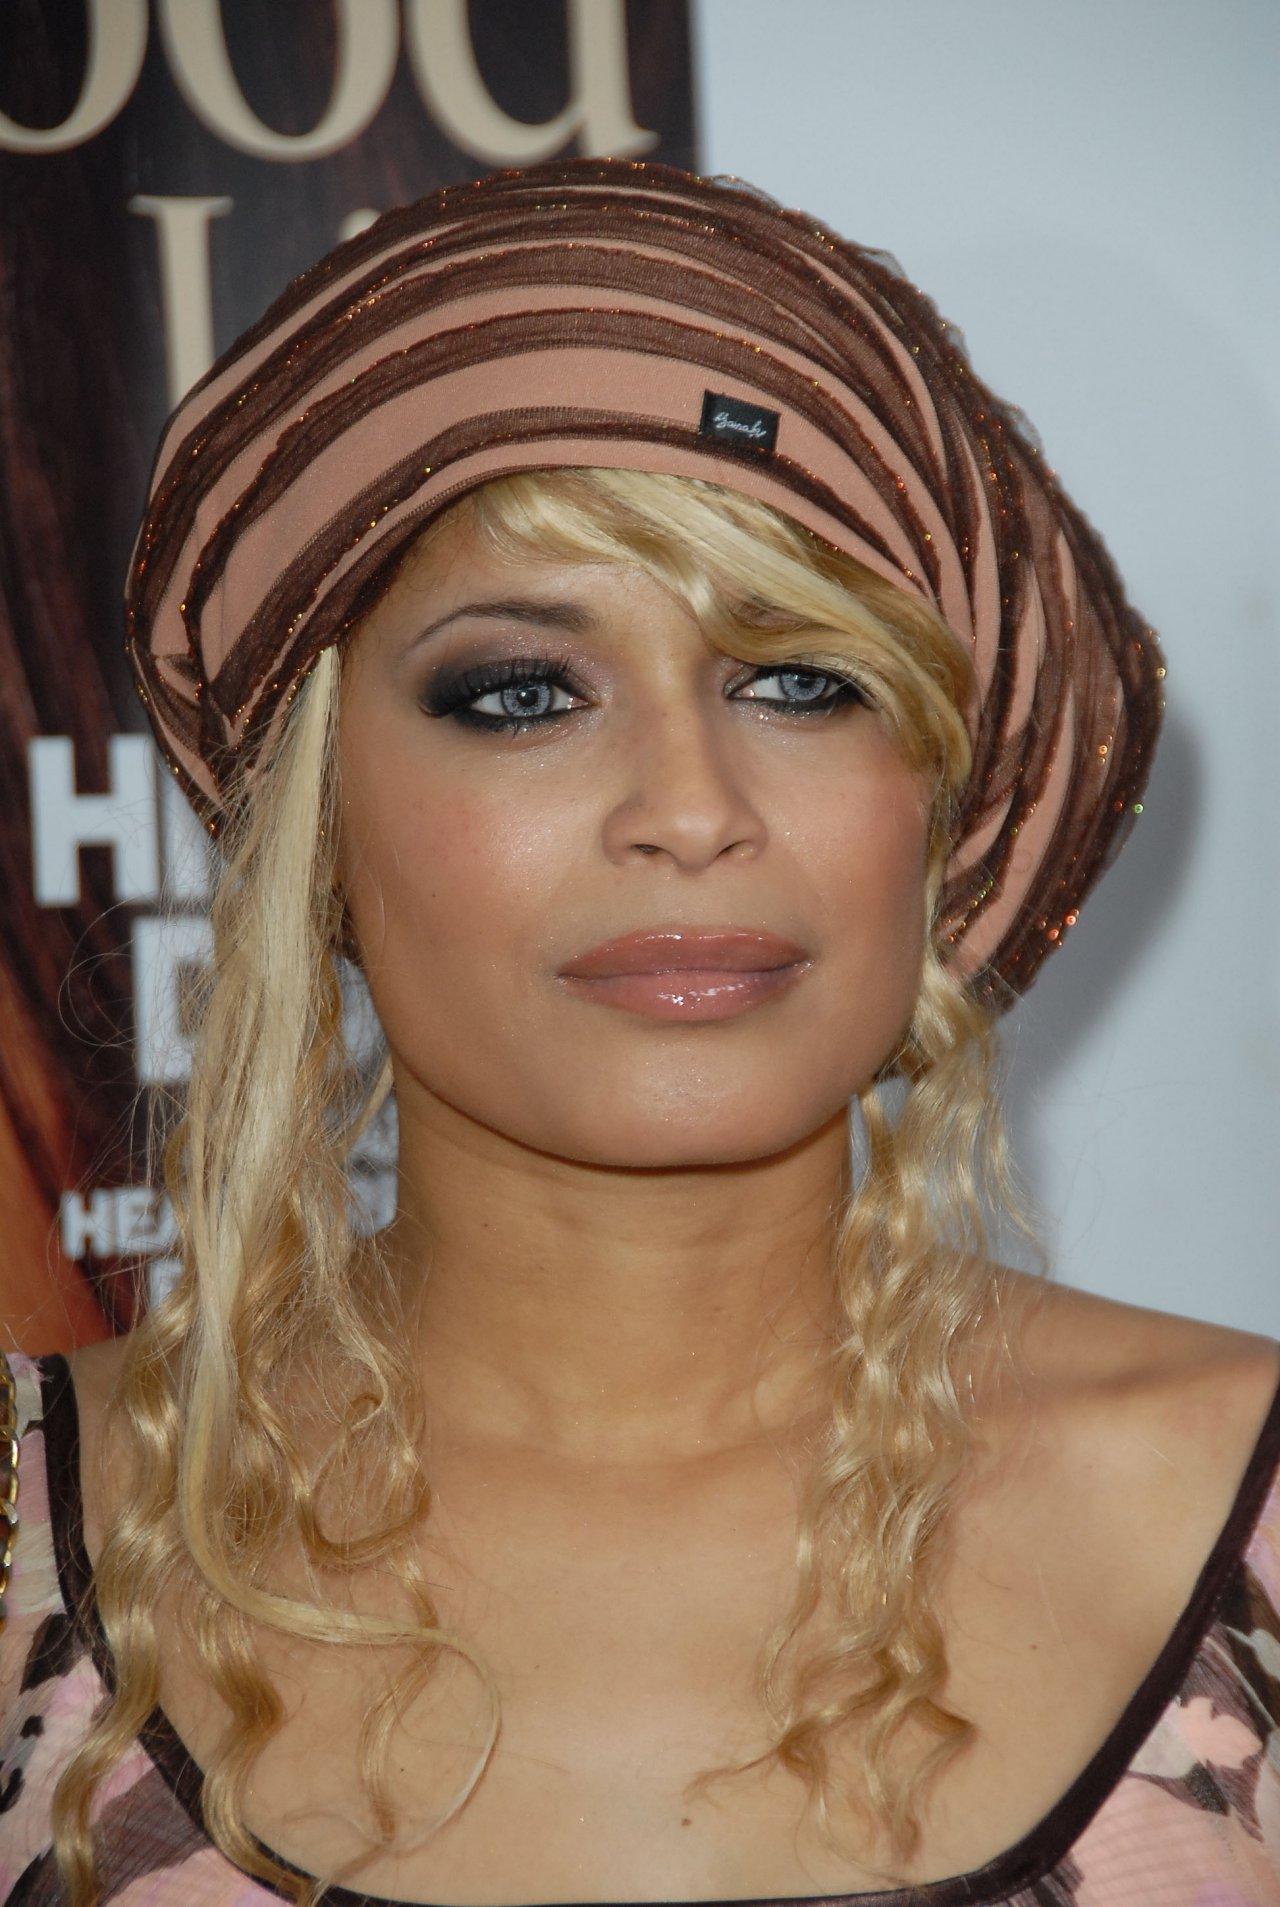 cantrall dating 1 blu cantrell the singer blu cantell, famous for her single 'breathe', that her and hova were together, and in love 2 aaliyah at one point jay z and aaliyah dated.